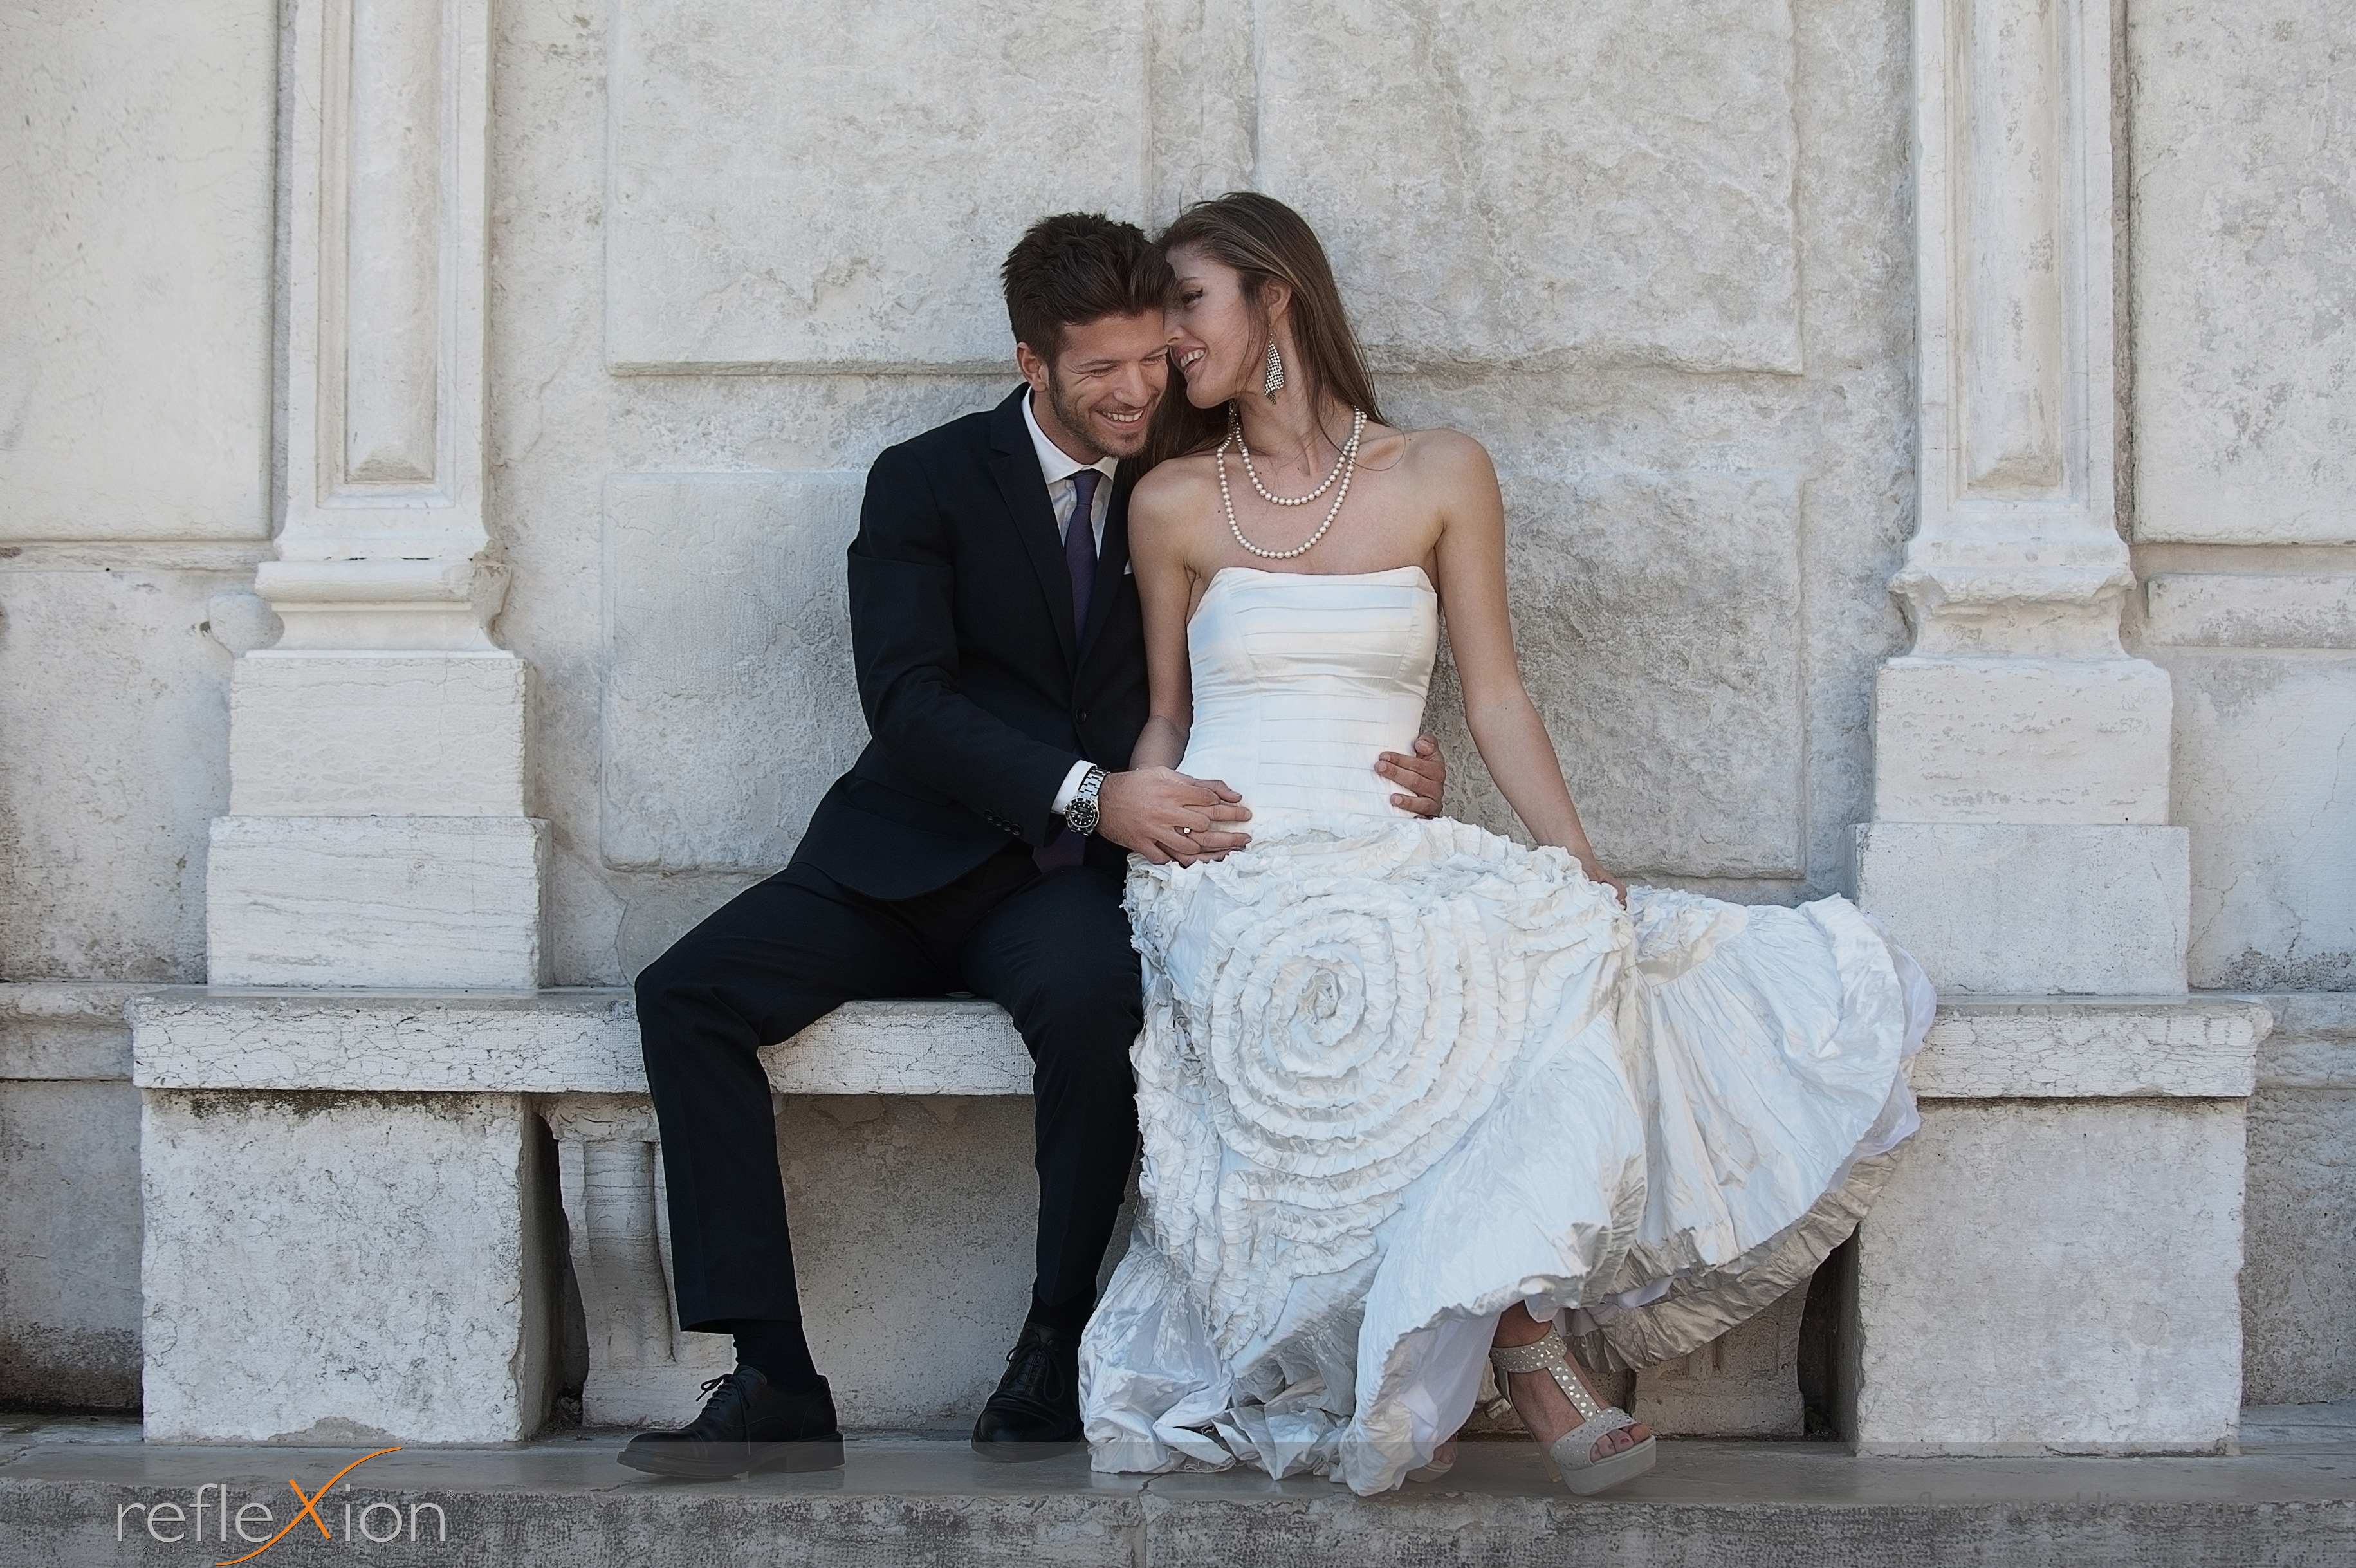 Locations for wedding photography in Venice - Campo Manin square 3